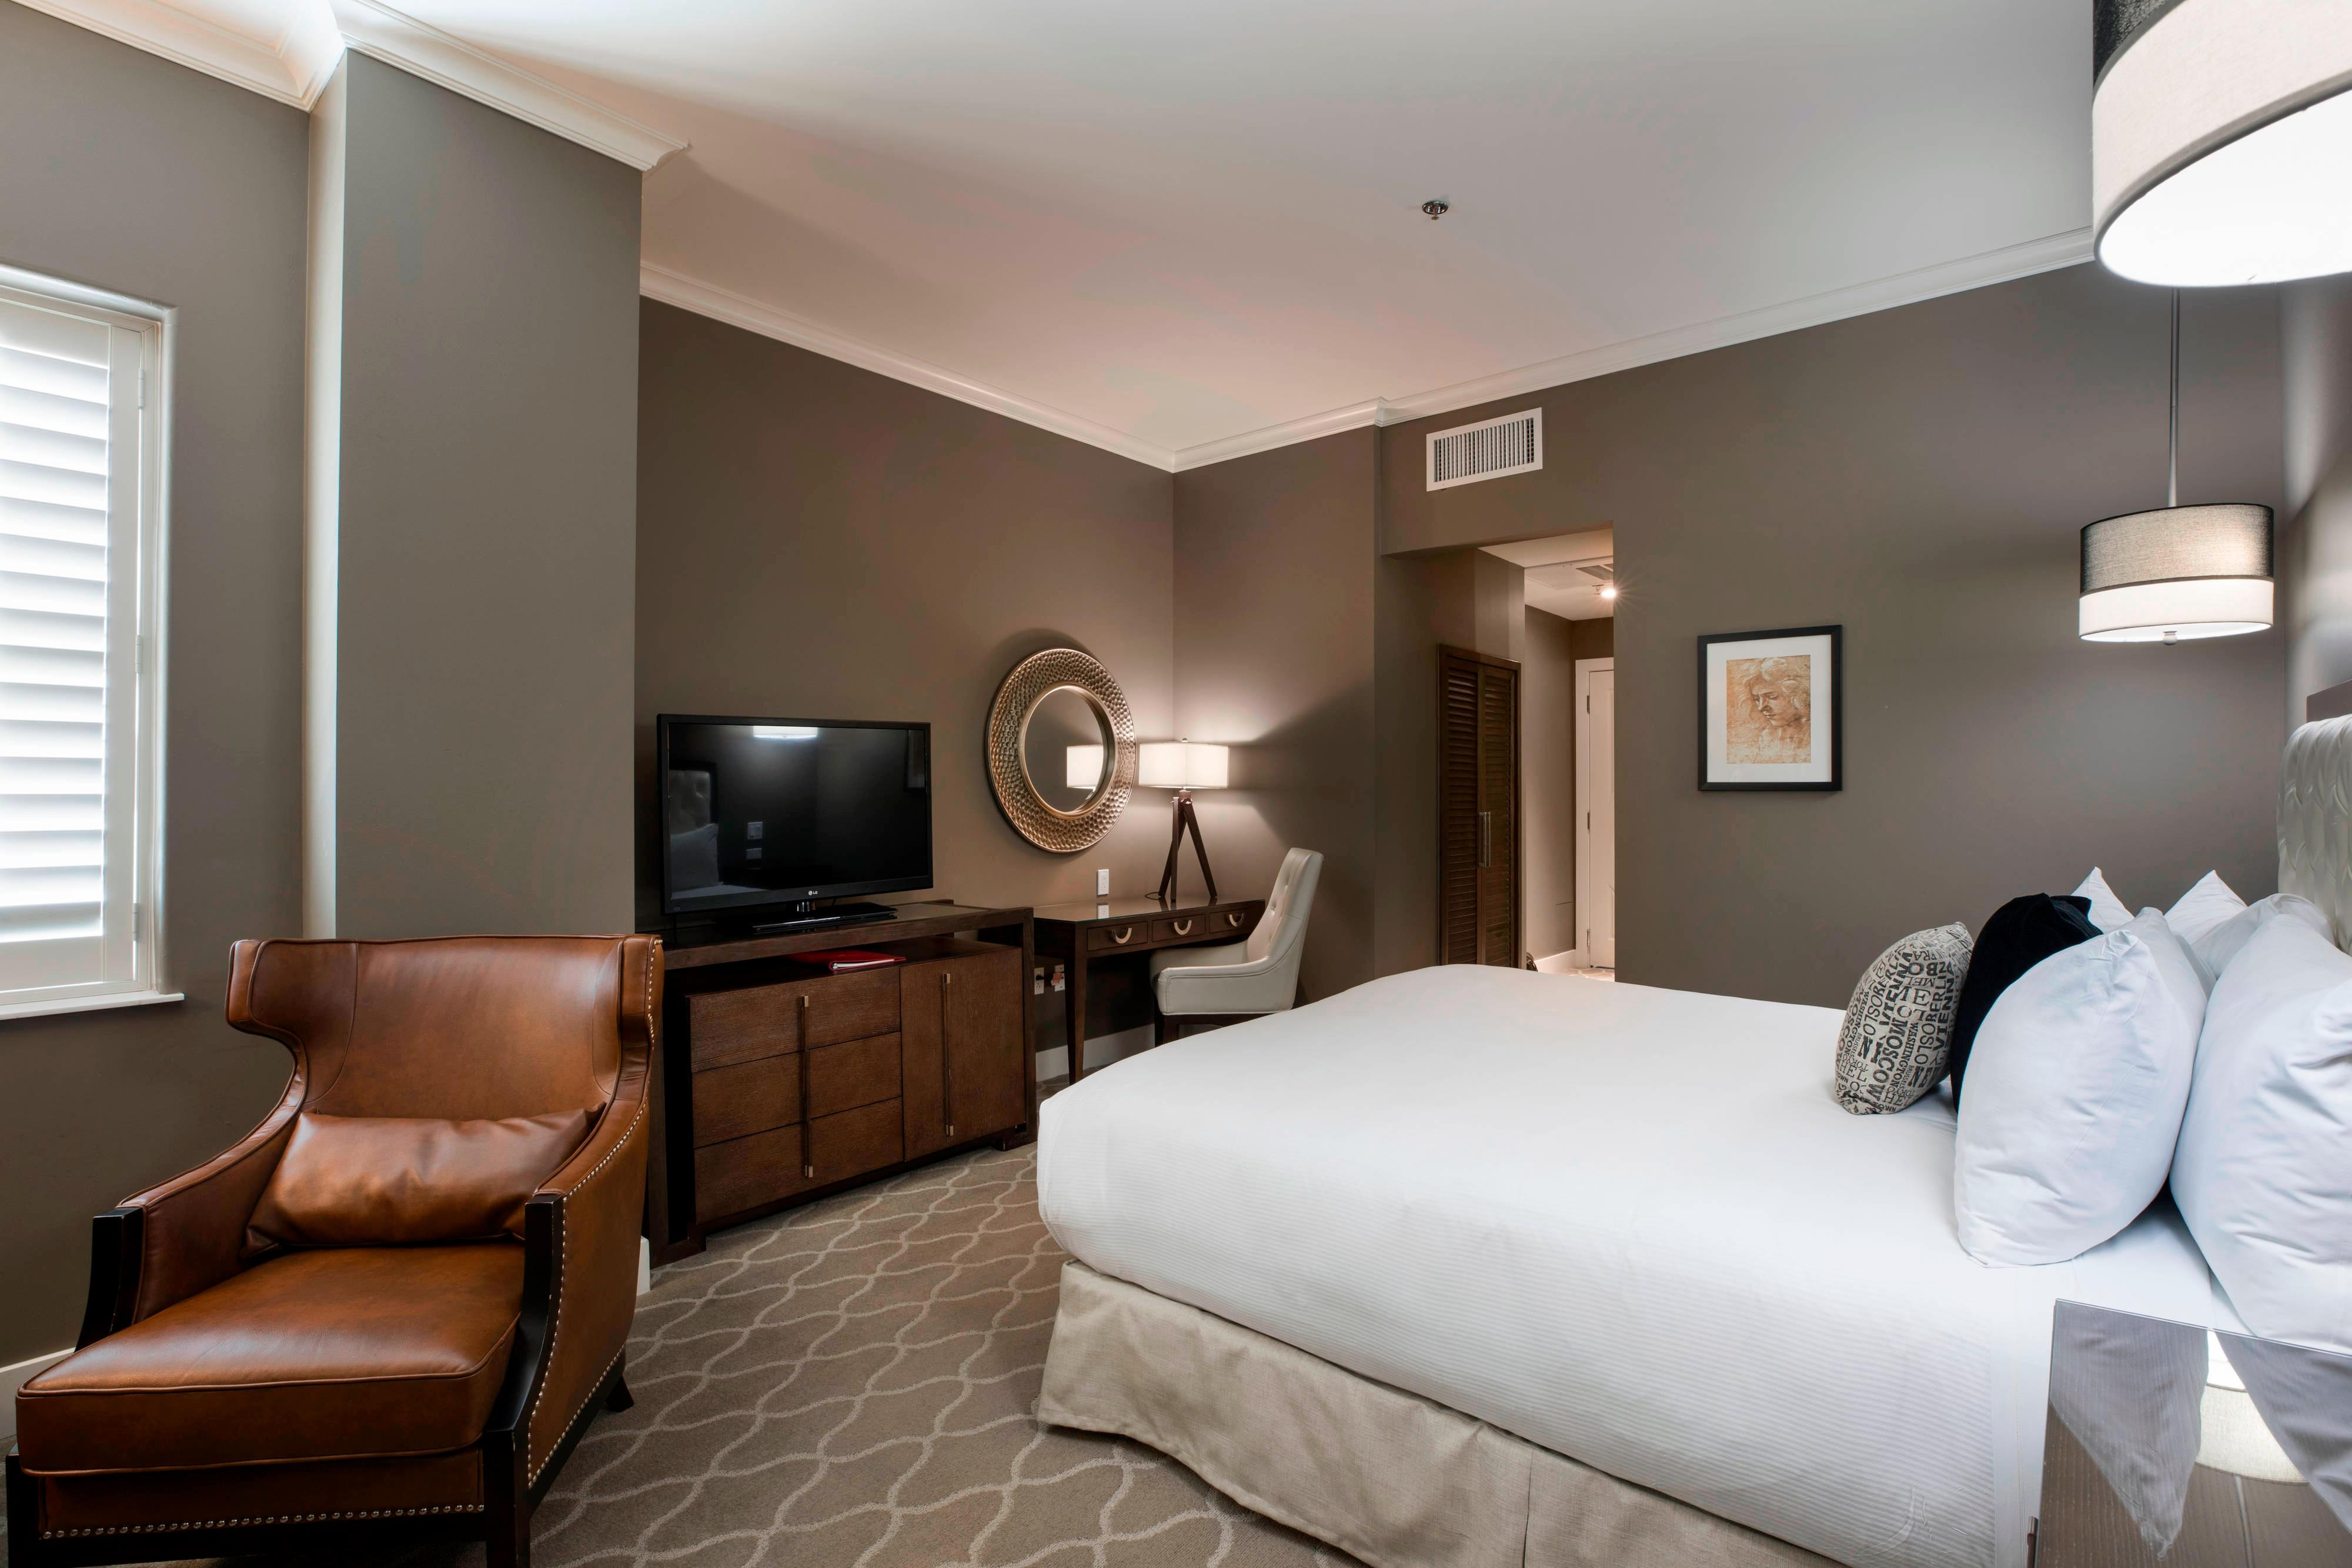 King Executive Guest Room - Bedroom